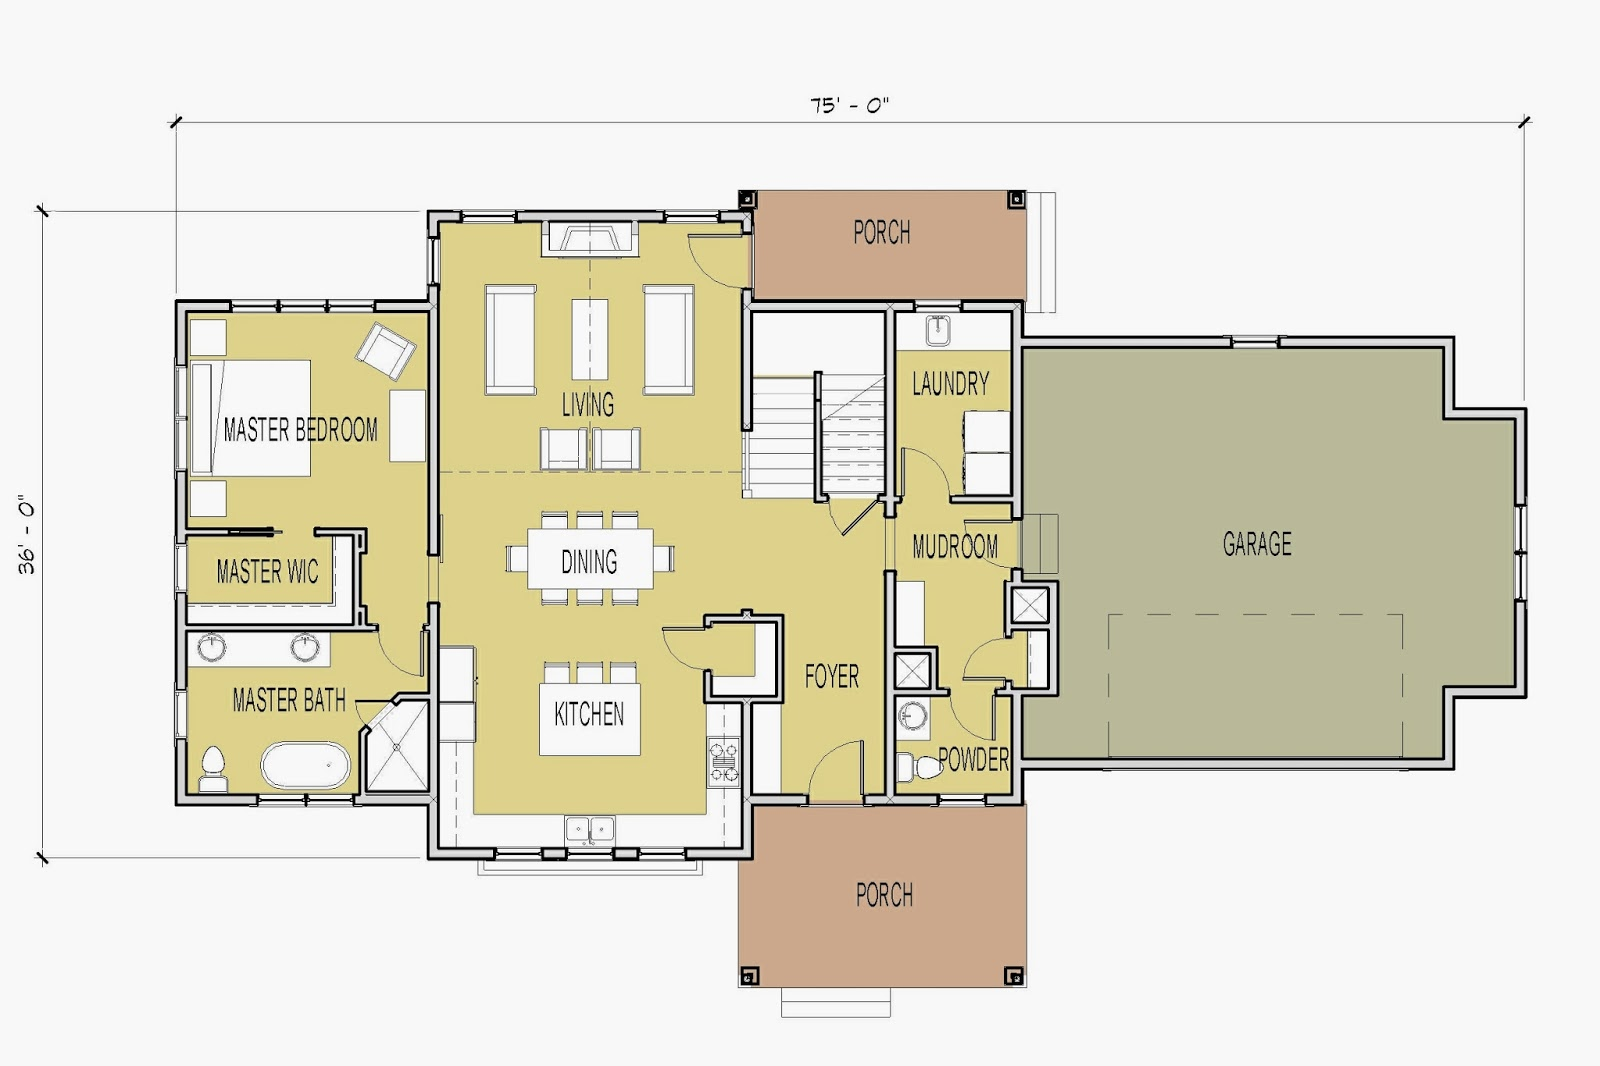 Simply Elegant Home Designs Blog: New House Plan with Main Floor ...